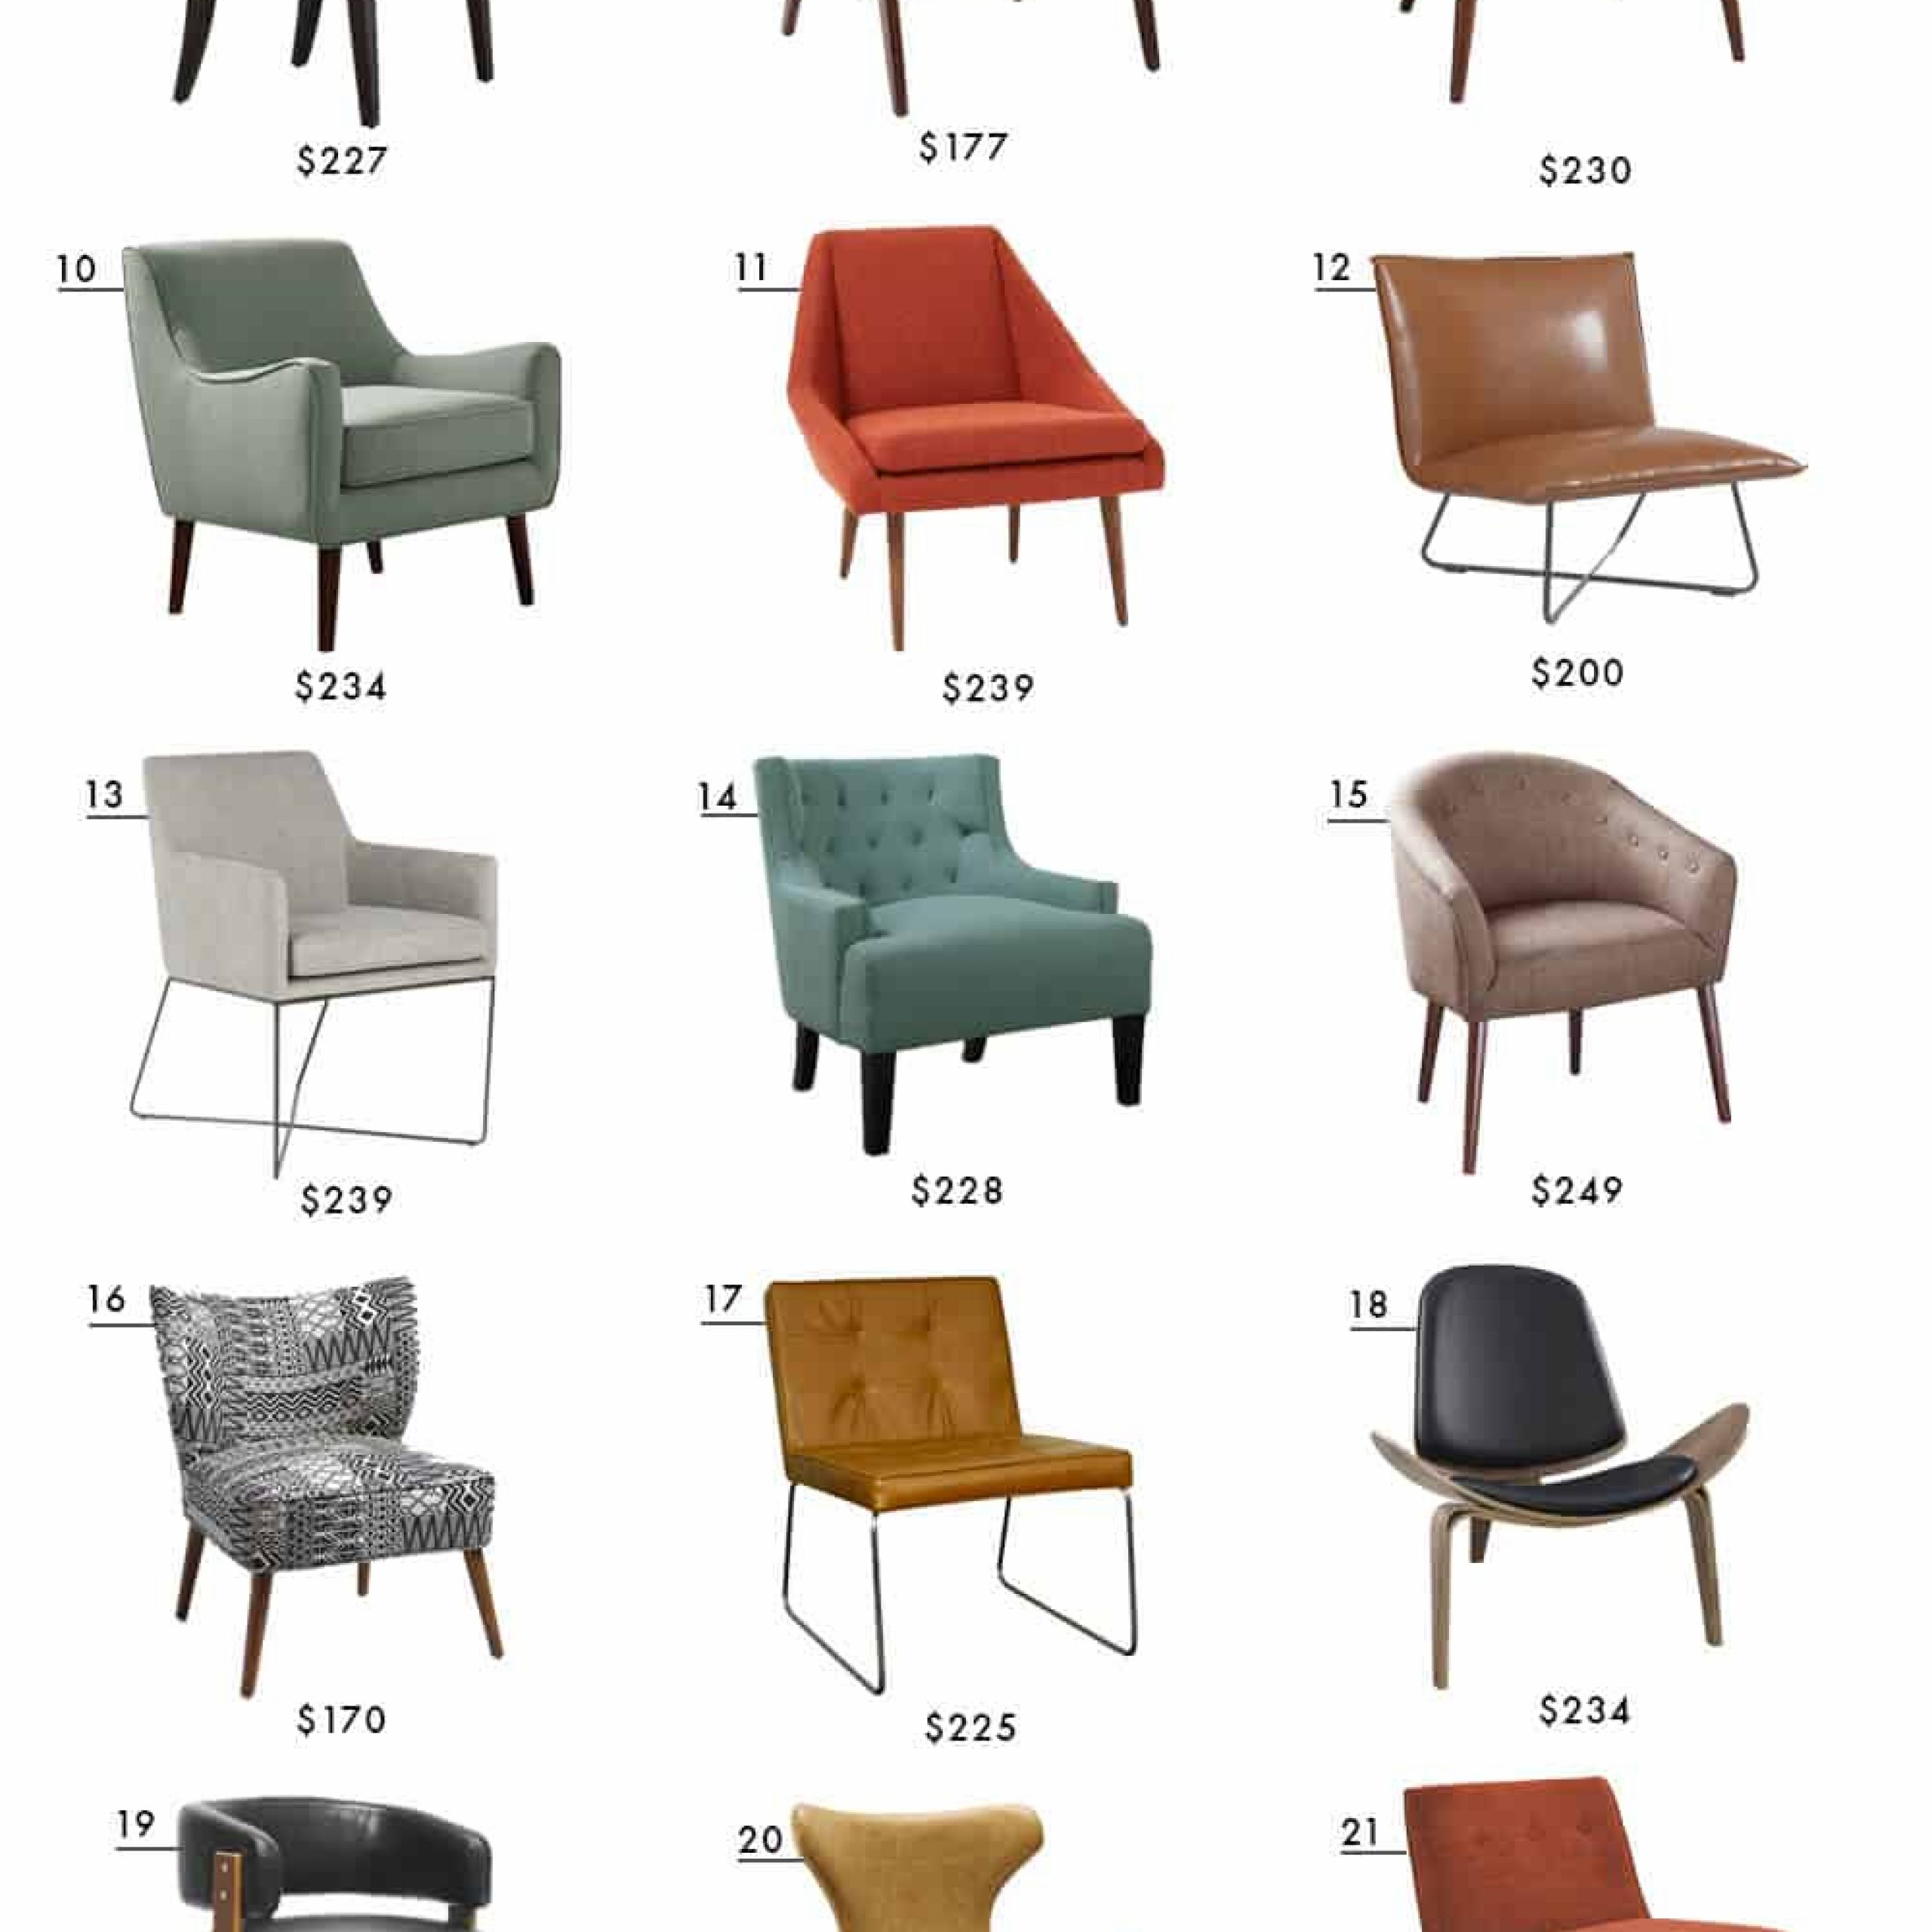 Affordable Accent Chair Roundup | Emily Henderson | Bloglovin' Pertaining To Hutchinsen Polyester Blend Armchairs (View 7 of 15)